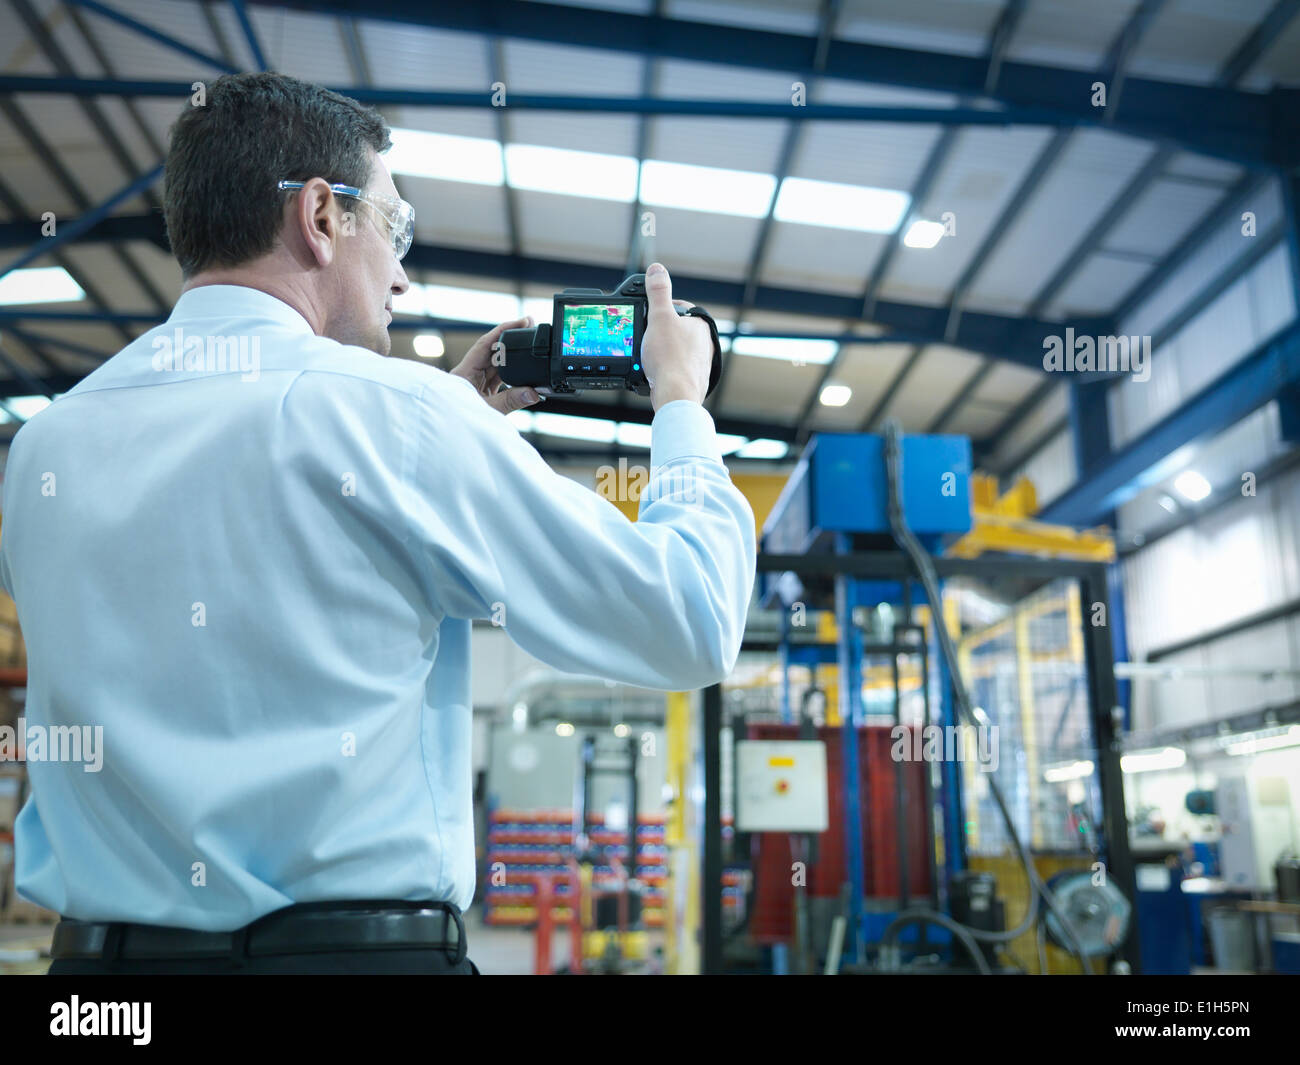 Office worker using infra red camera to check power use in factory - Stock Image